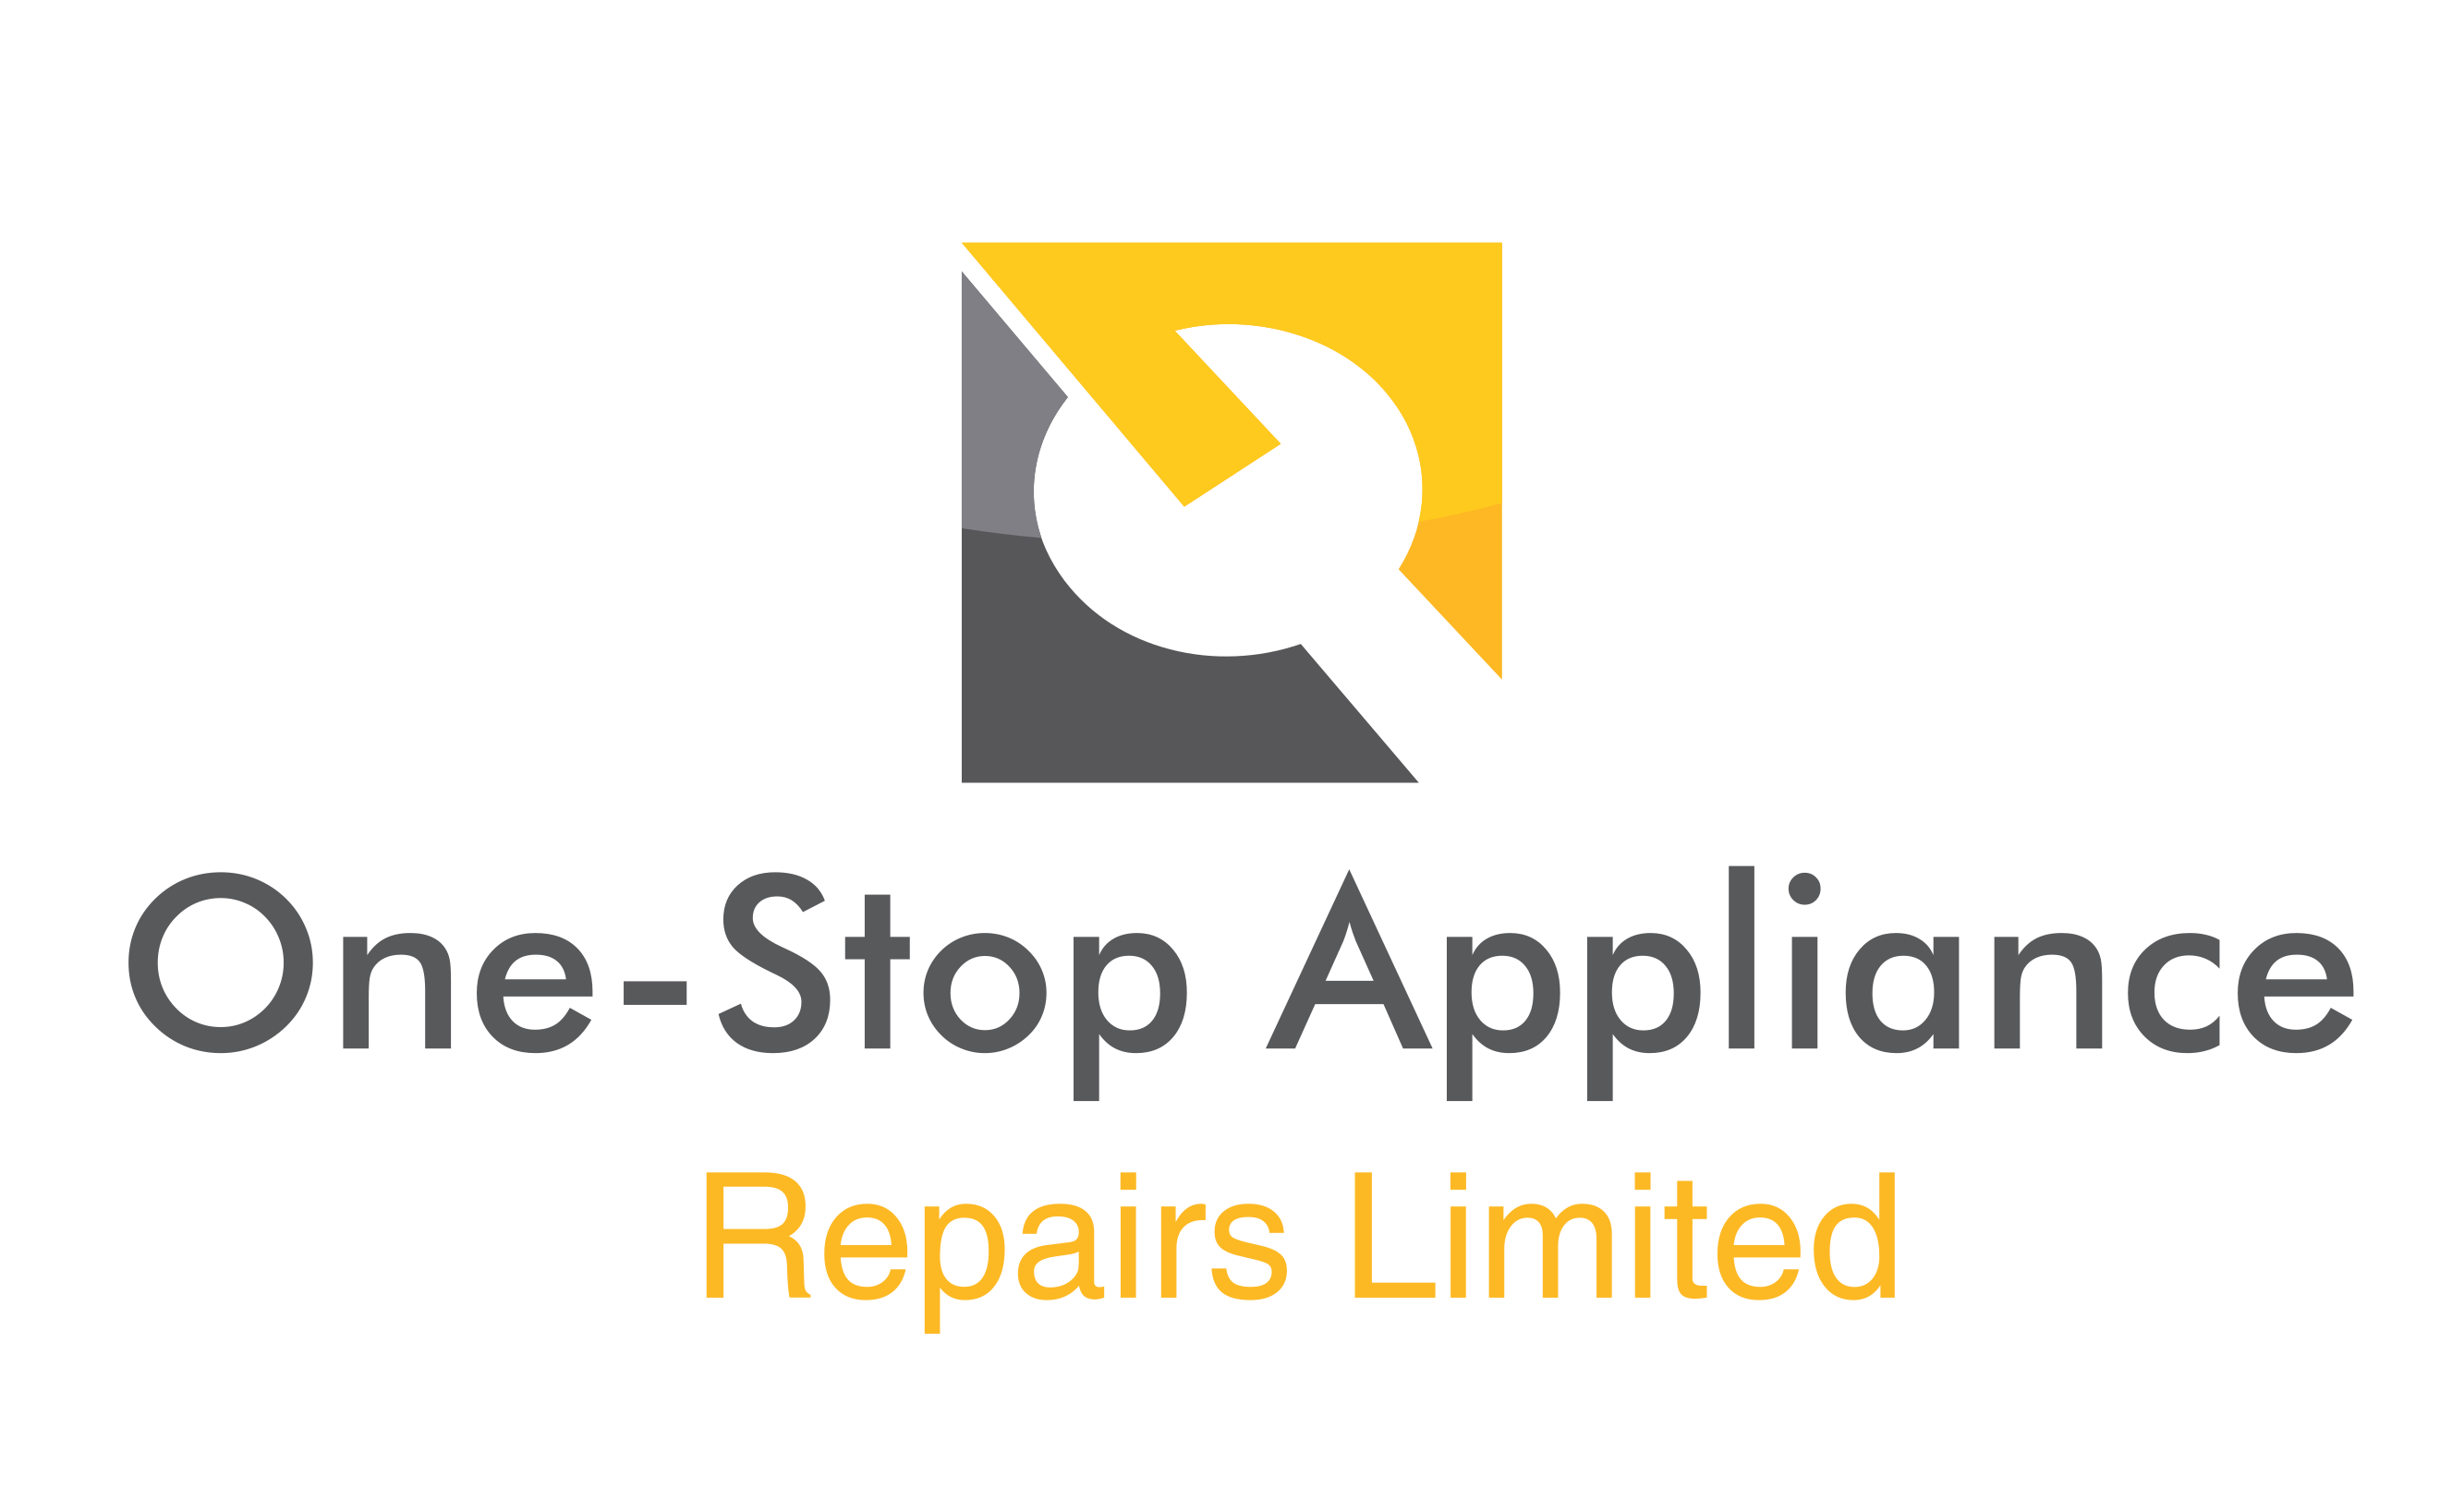 Appliance Repairs Caerphilly, Cardiff and Newport